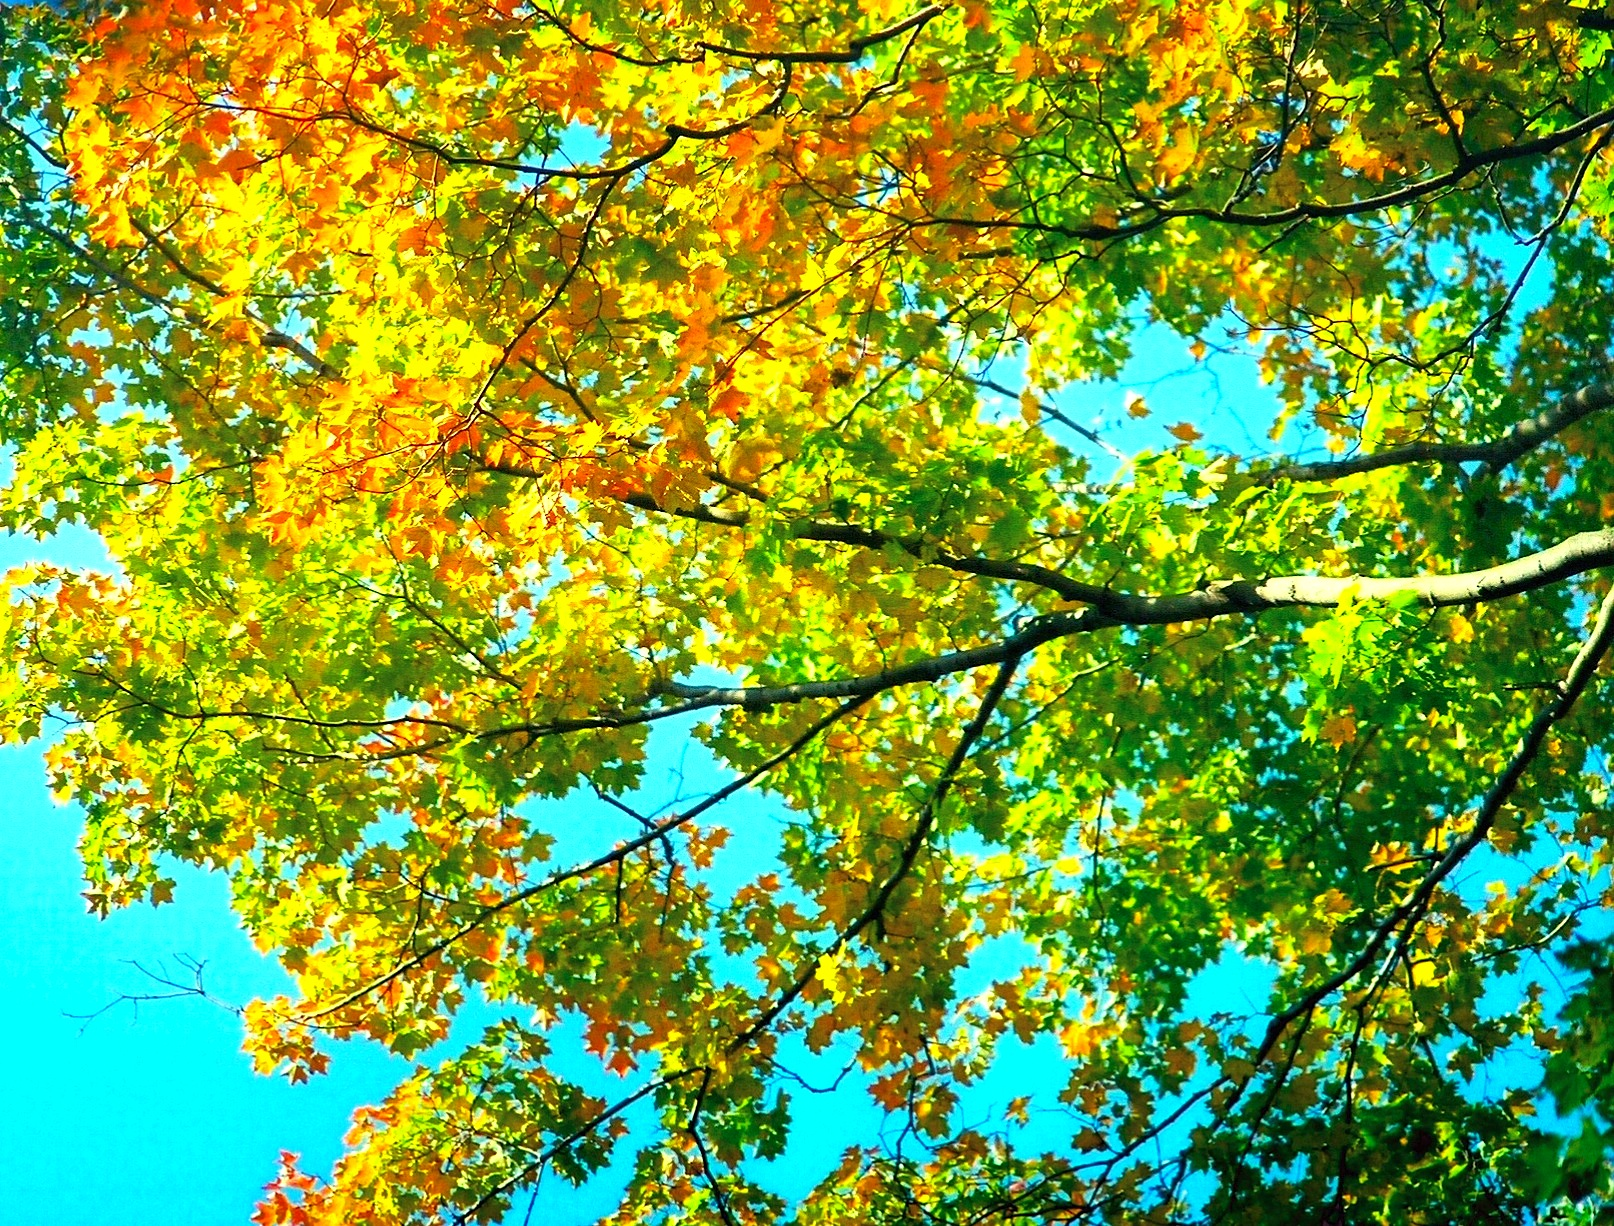 File:Maple trees turning color autumn.jpg - Wikimedia Commons